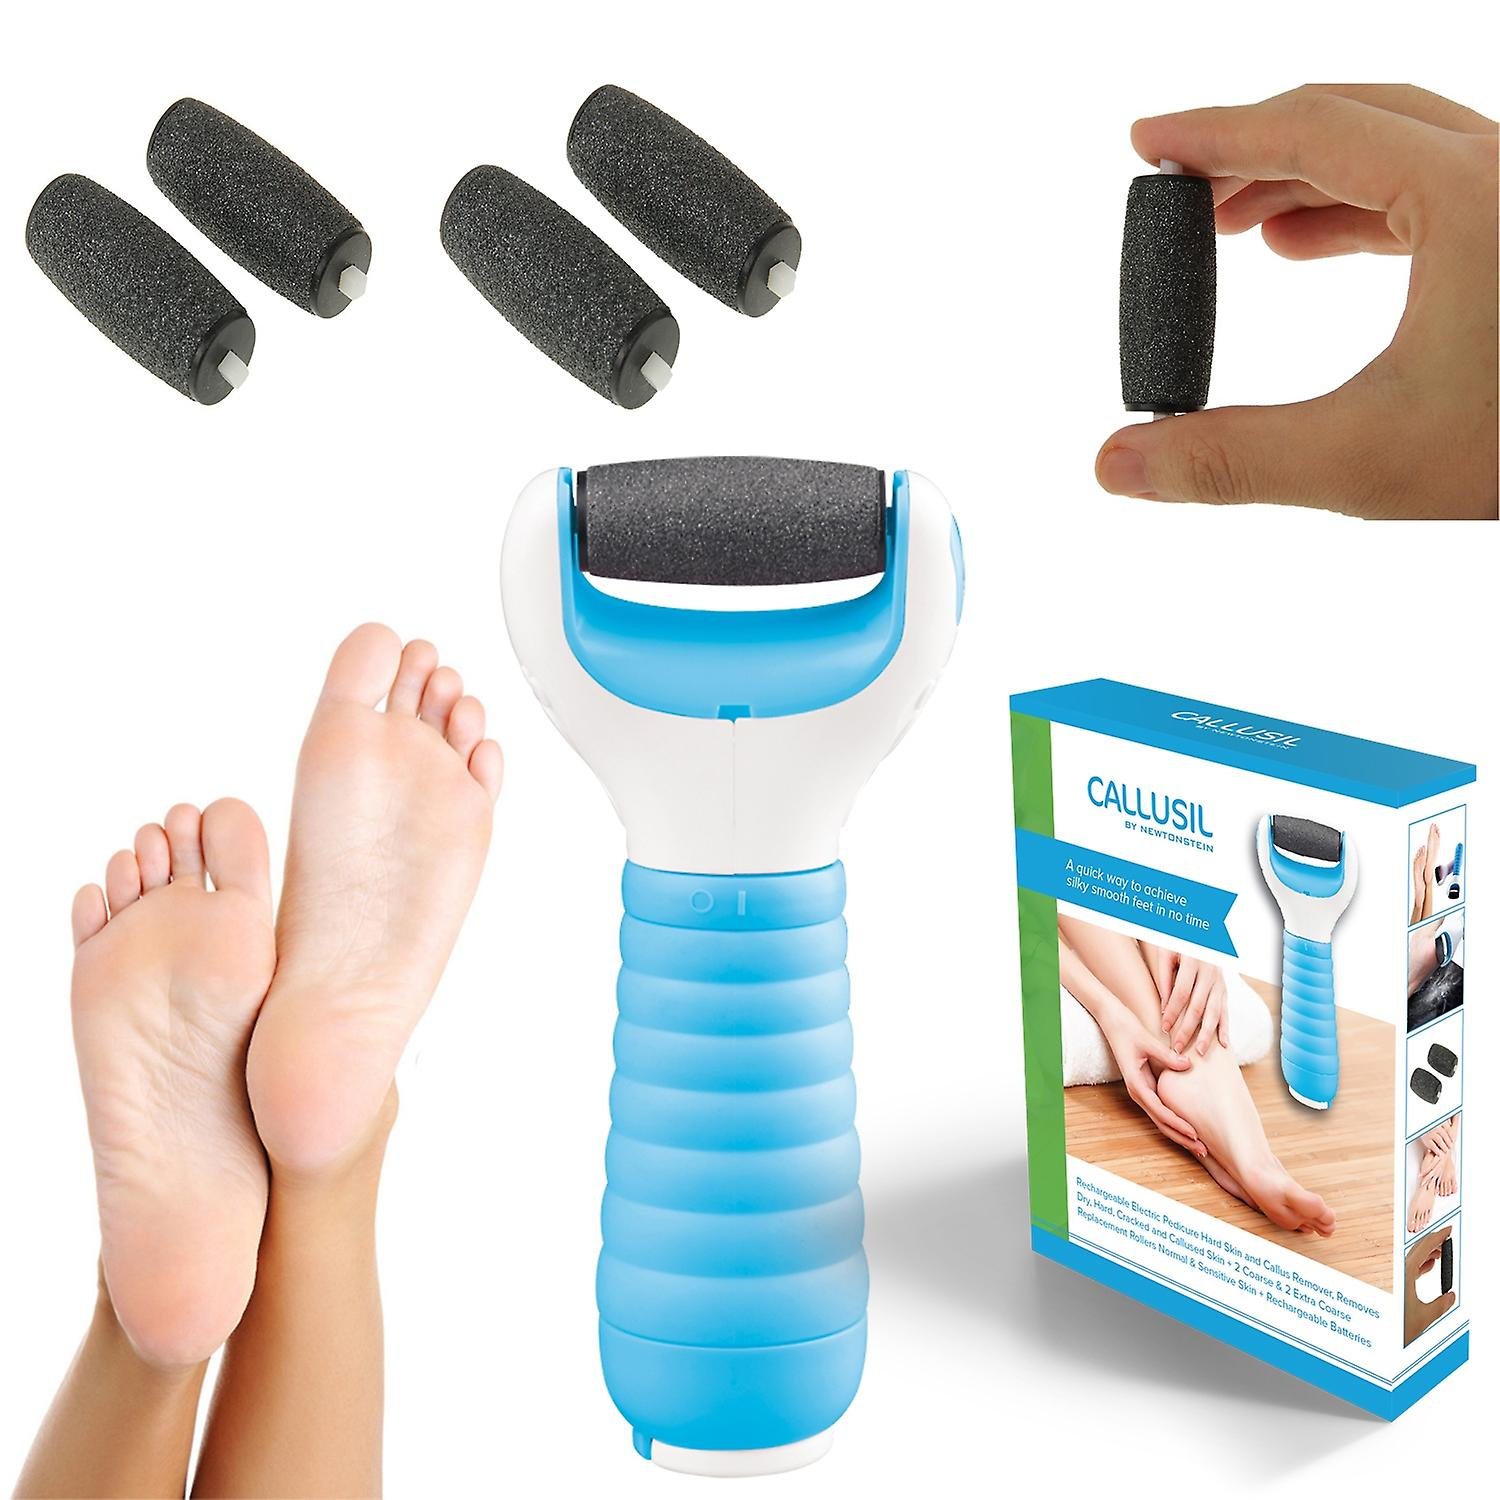 Ava Moritz - Callusil - Rechargeable Electric Pedicure Hard Skin and Callus Remover Removes Dry Hard Cracked and Callused Skin + 2 Coarse and 2 Extra Coarse Replacement Rollers Normal and Sensitive Skin + Rechargeable Batteries